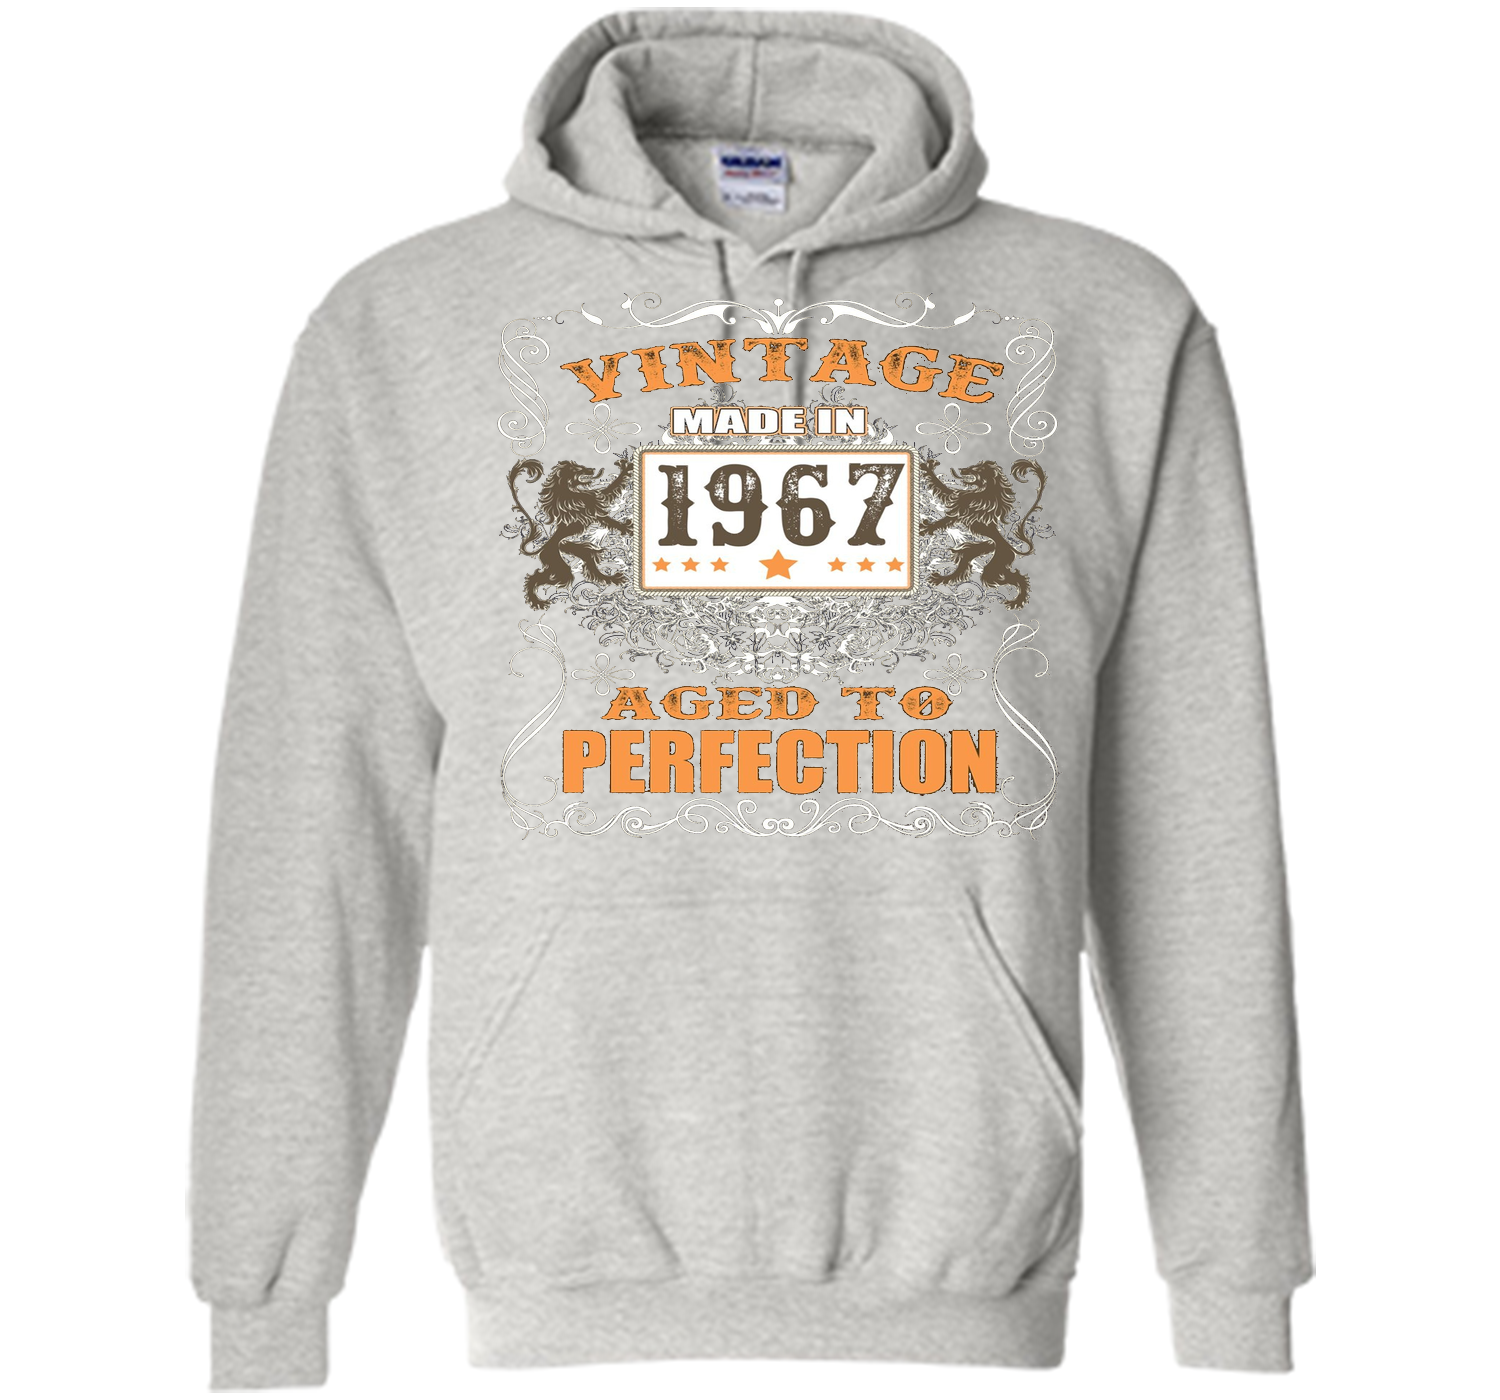 3a472ac0 VINTAGE BORN IN 1967 T SHIRT 50 YEARS OLD BIRTHDAY   Products ...